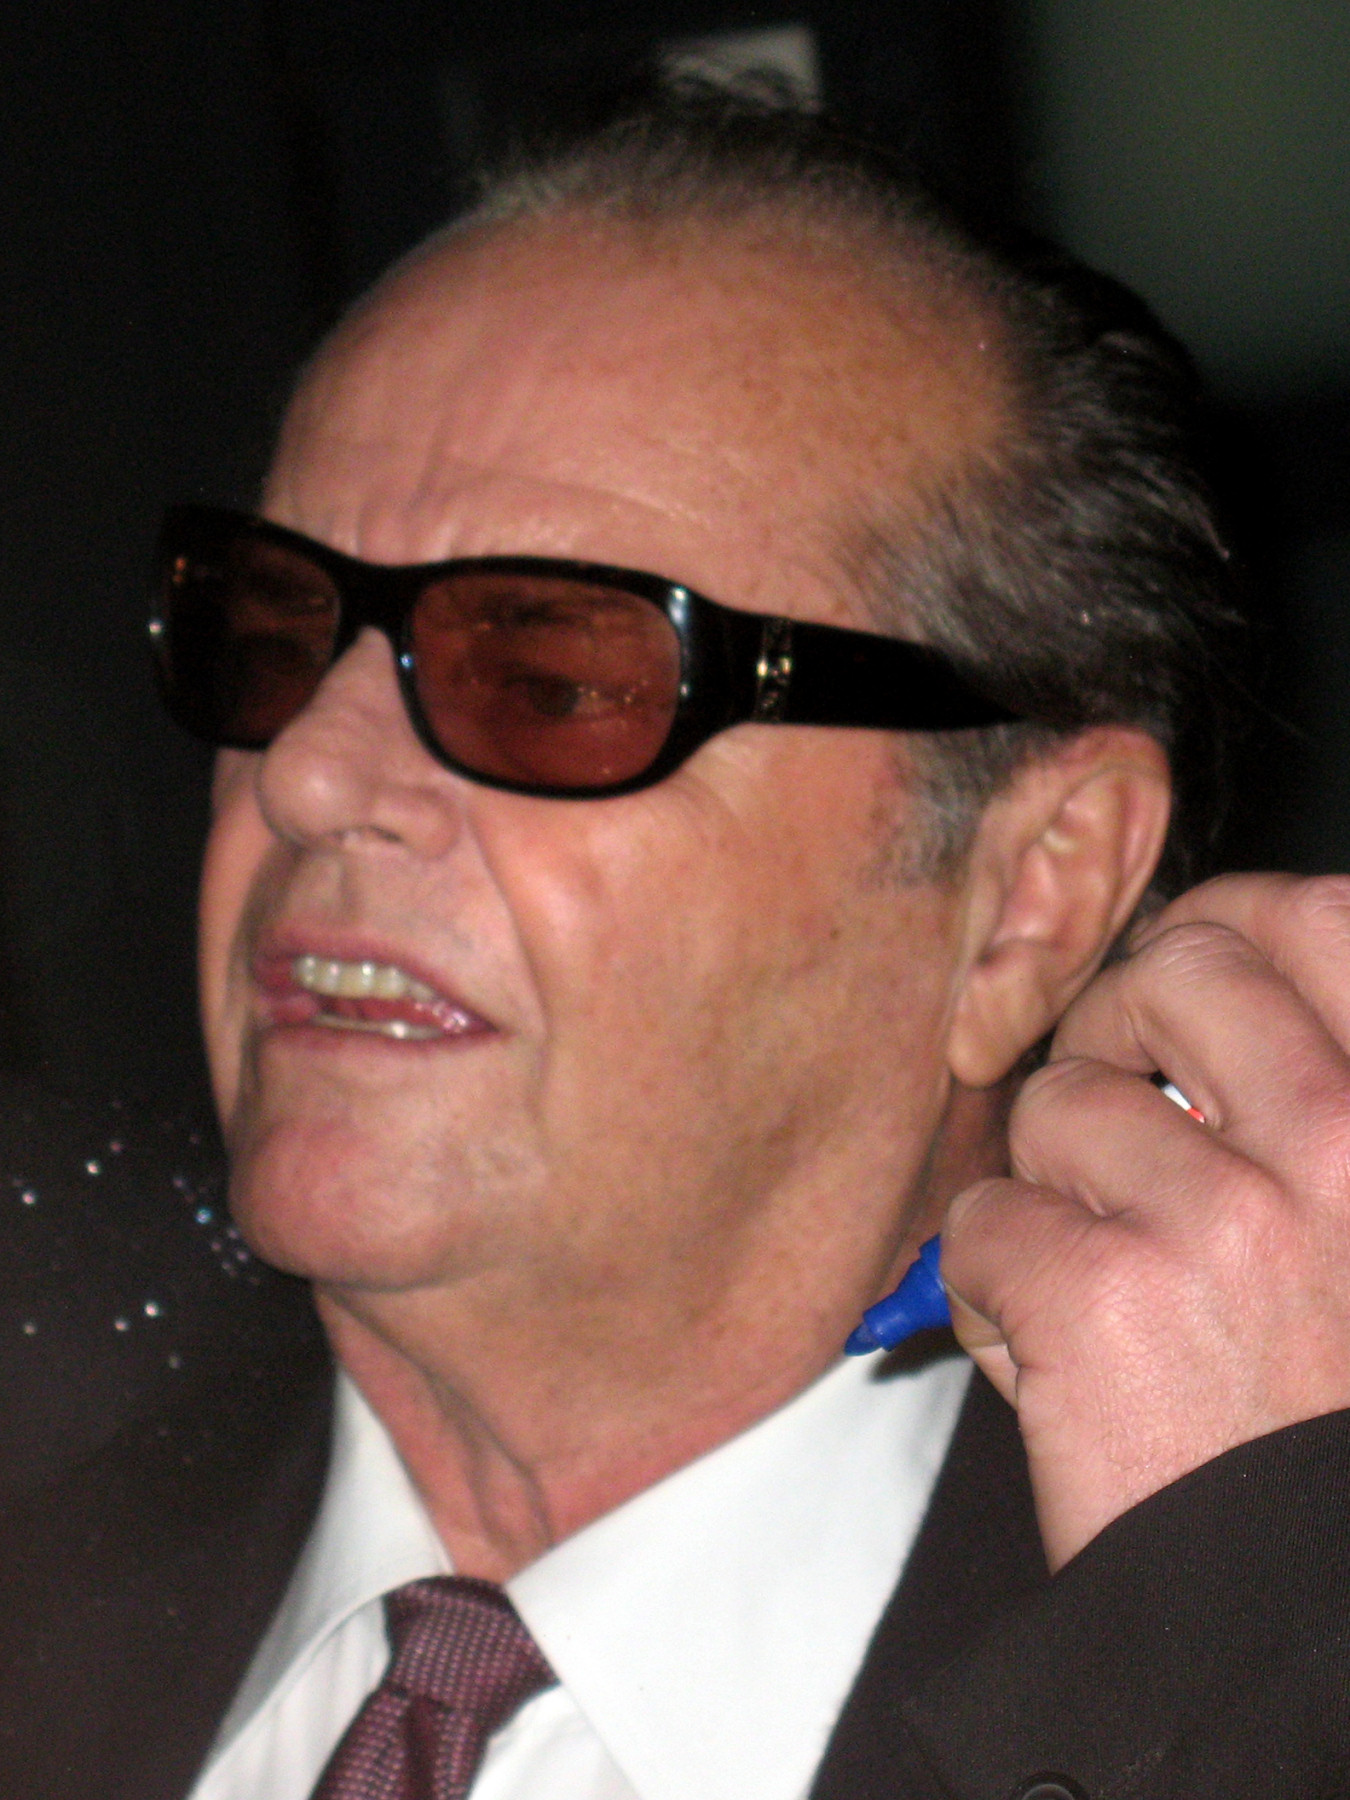 Jack Nicholson Wikipedia La Enciclopedia Libre Disney+ is the exclusive home for your favorite movies and tv shows from disney, pixar, marvel, star wars, and national geographic. jack nicholson wikipedia la